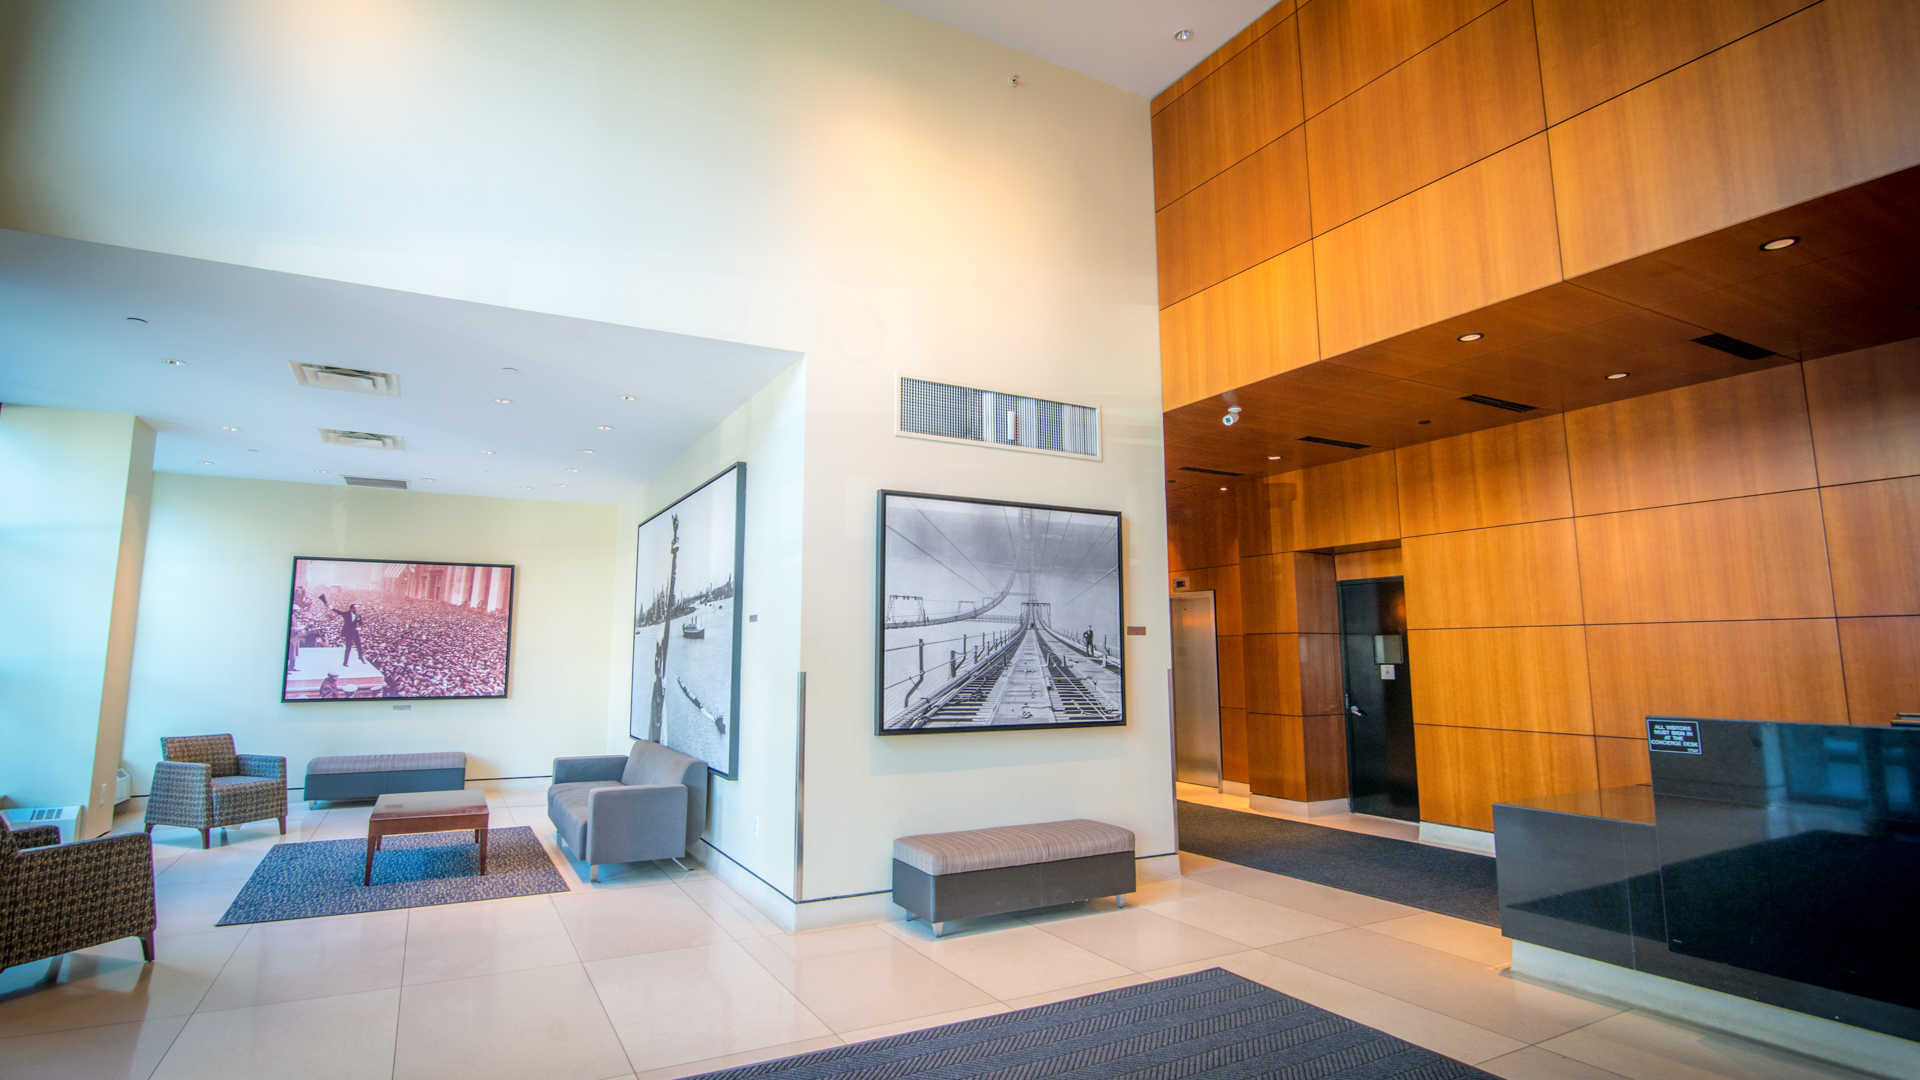 Hudson crossing apartments lobby